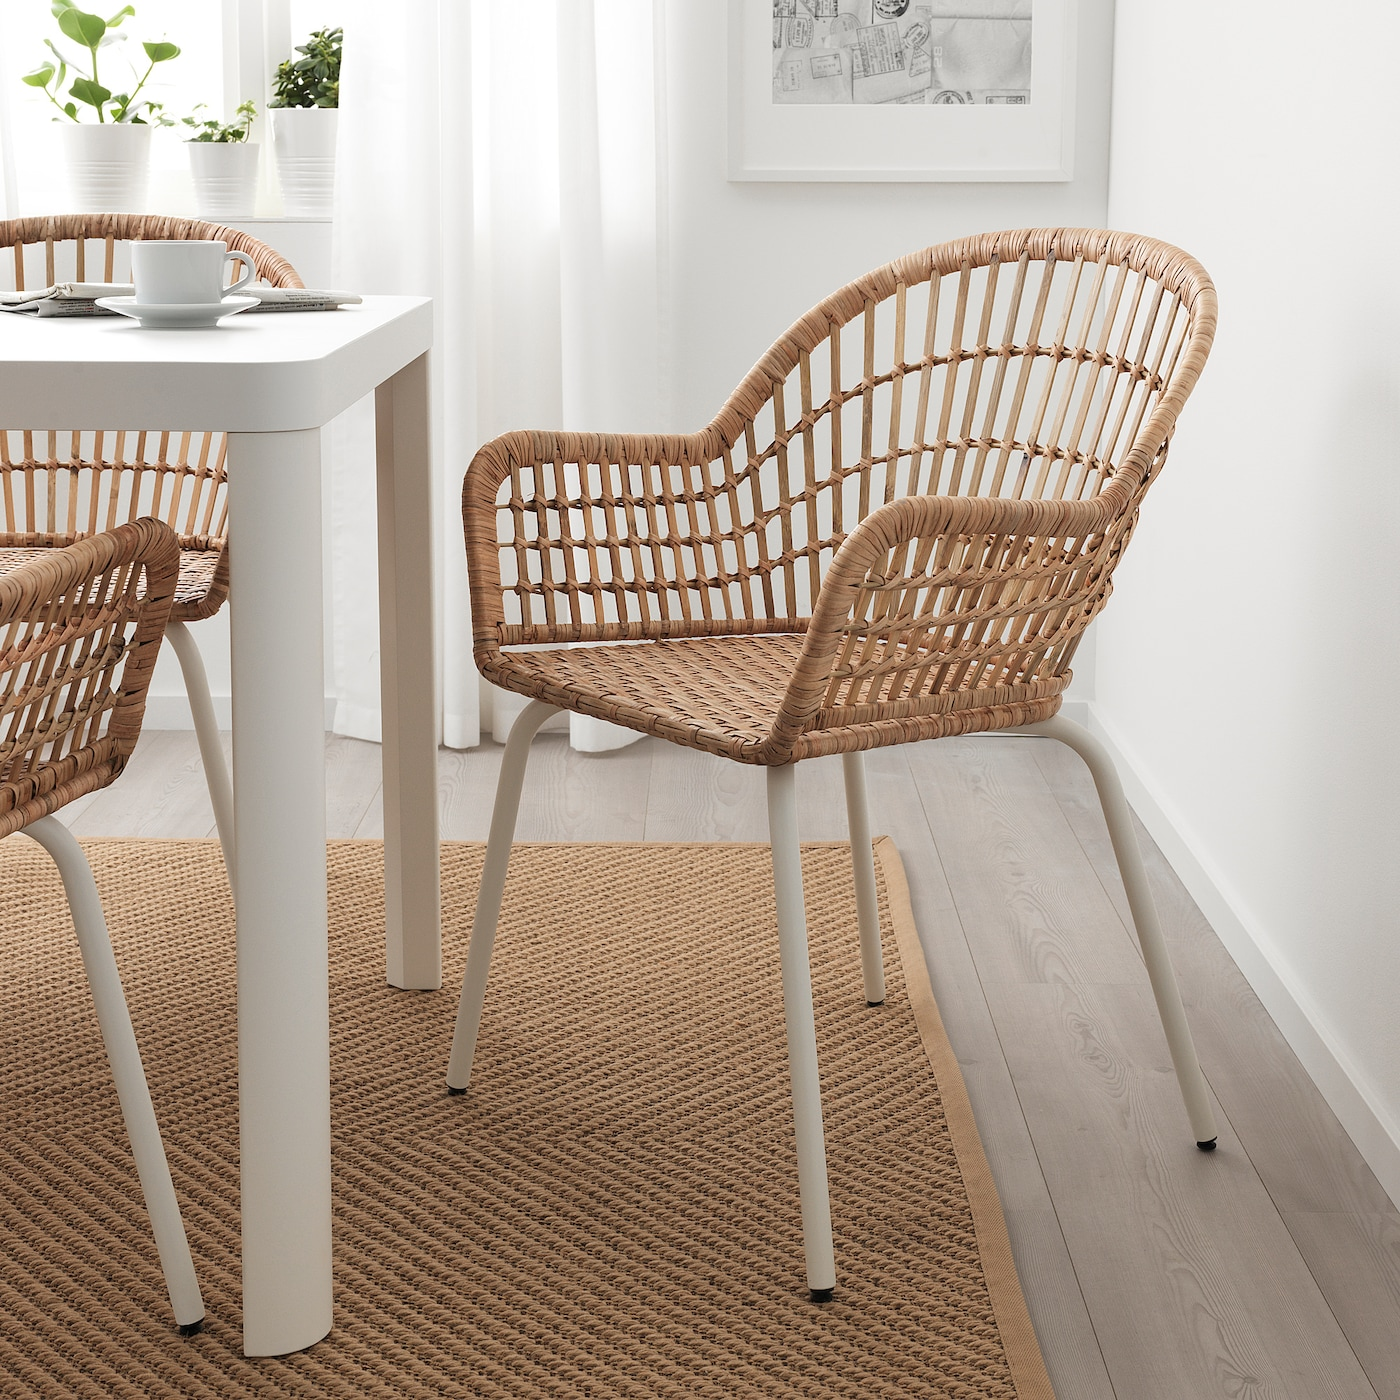 NILSOVE Chair with armrests - rattan/white